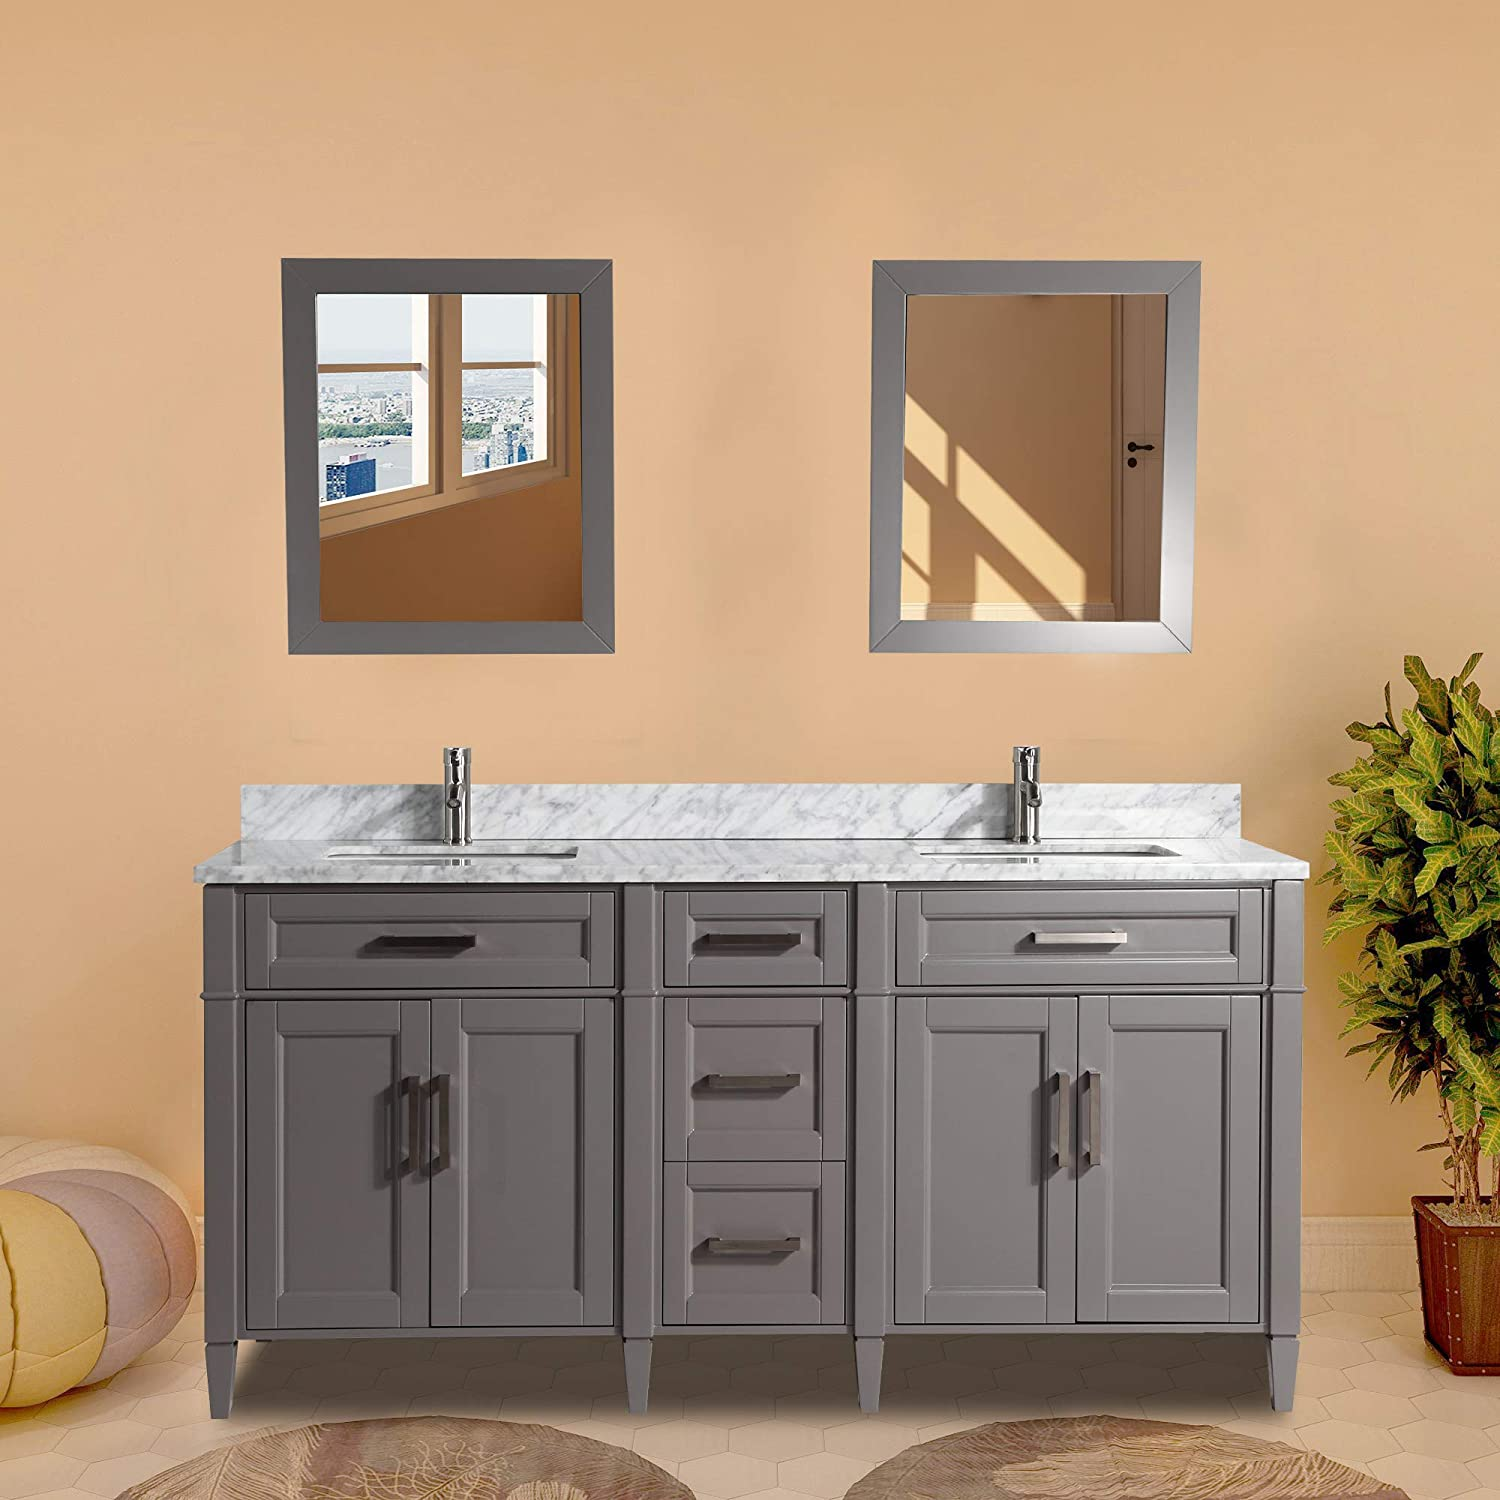 Vanity Art 72 Inch Double Sink Bathroom Vanity Set Carrara Marble Stone Soft Closing Doors Undermount Rectangle Sinks with Free Two Mirror – VA2072-DG